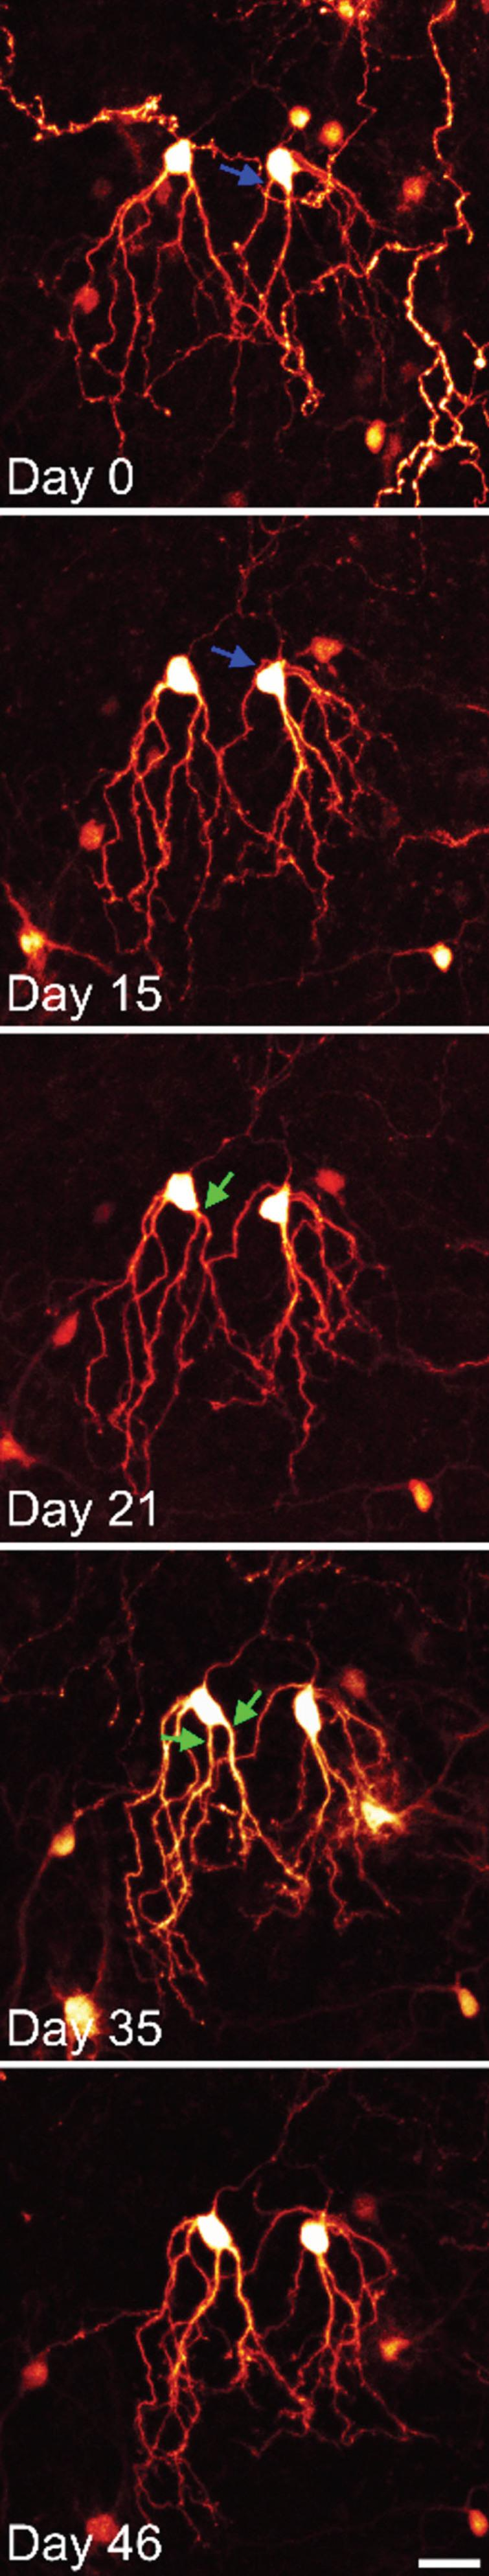 Time series confocal images of YFP-expressing granule cells in an organotypic hippocampal slice culture. The two granule cells shown were imaged over a period of 6 weeks. Both cells show modest somatic translocation, with the soma moving into the apical dendrites. In both cases, this distorts the apical dendritic tree. The blue arrow shows an apical dendrite, which is shifted to the basal pole of the cell. The green arrows show the soma absorbing a dendritic branch point, converting a single primary dendrite into two primary dendrites. Scale bar=20μm.